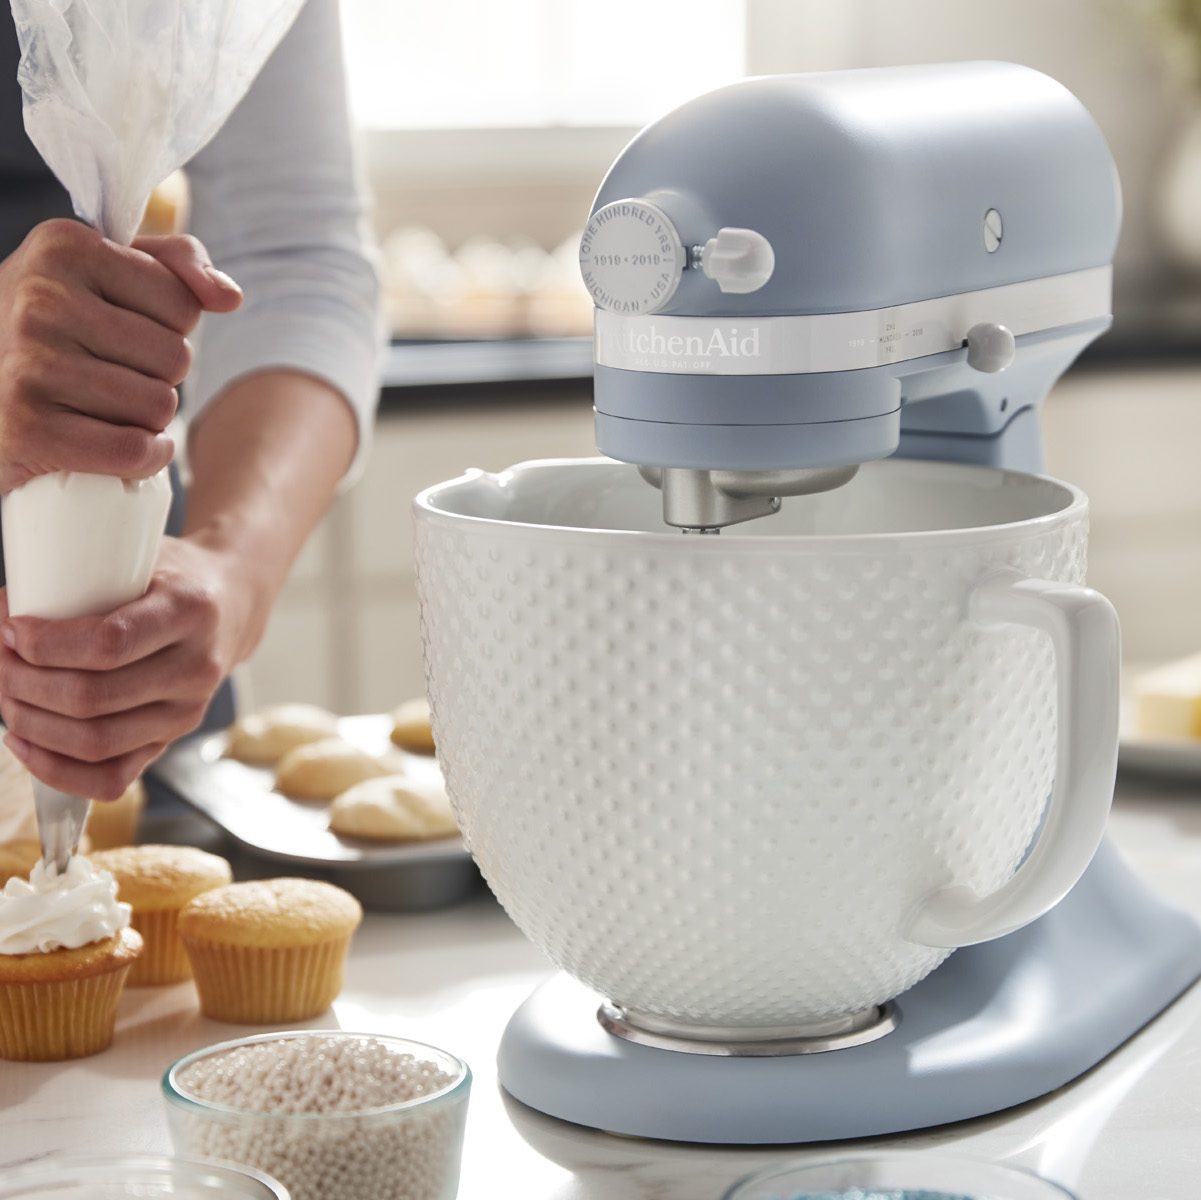 Kitchenaid Just Released A Retro Inspired Mixer Color To Celebrate